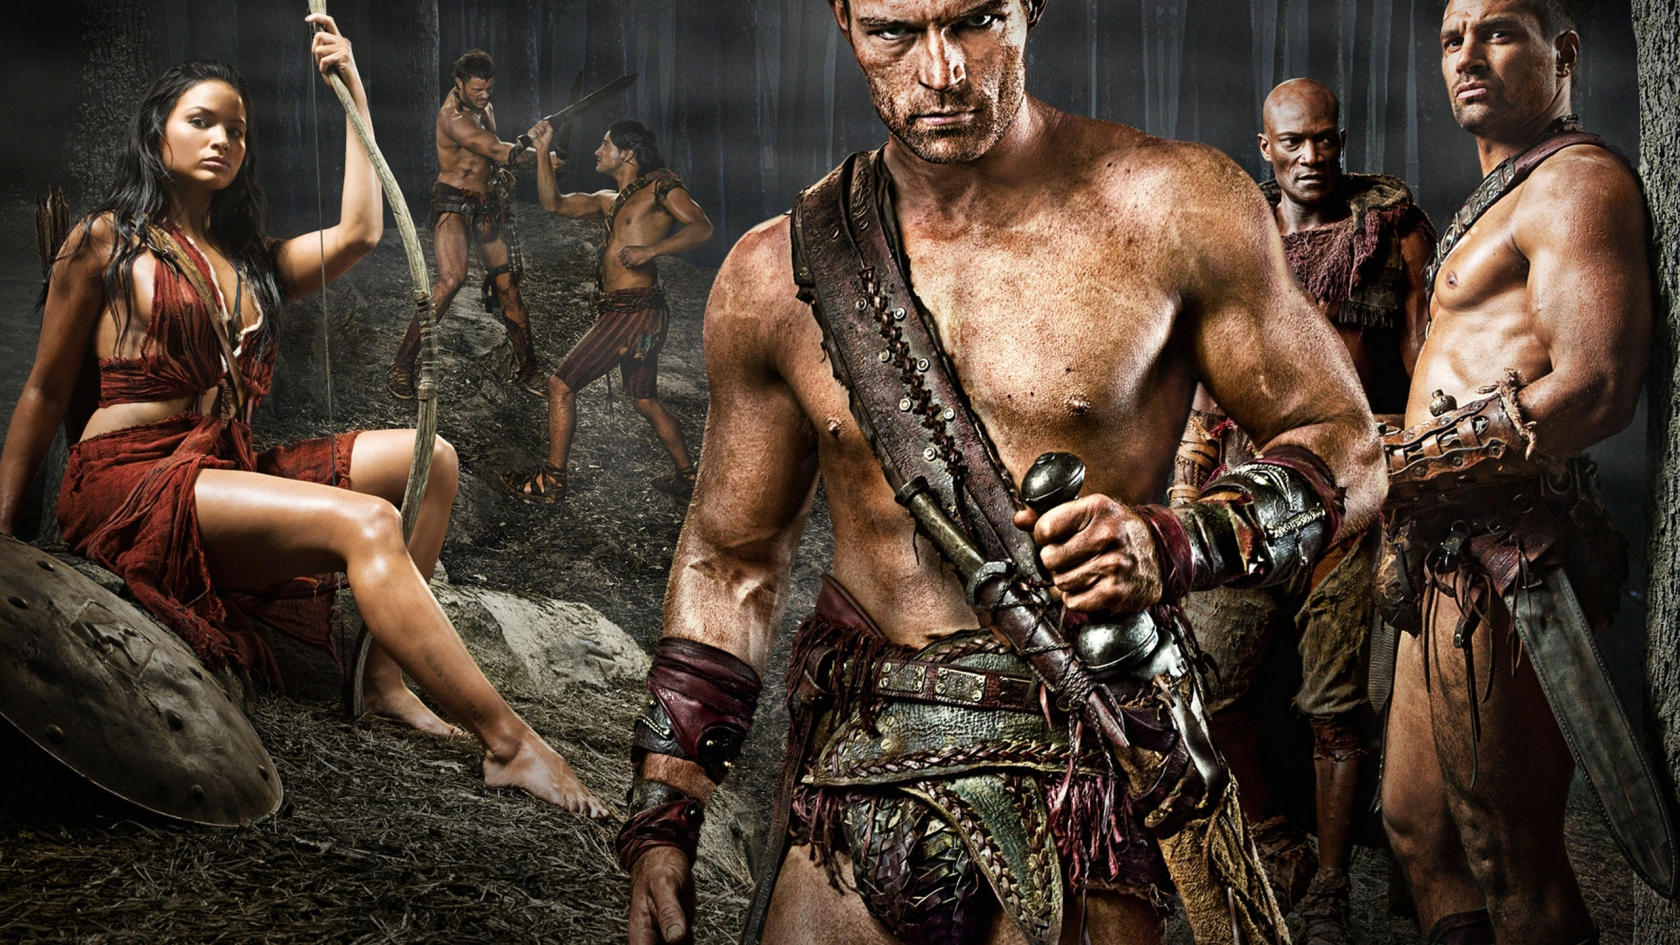 Spartacus Poster for 1680 x 945 HDTV resolution